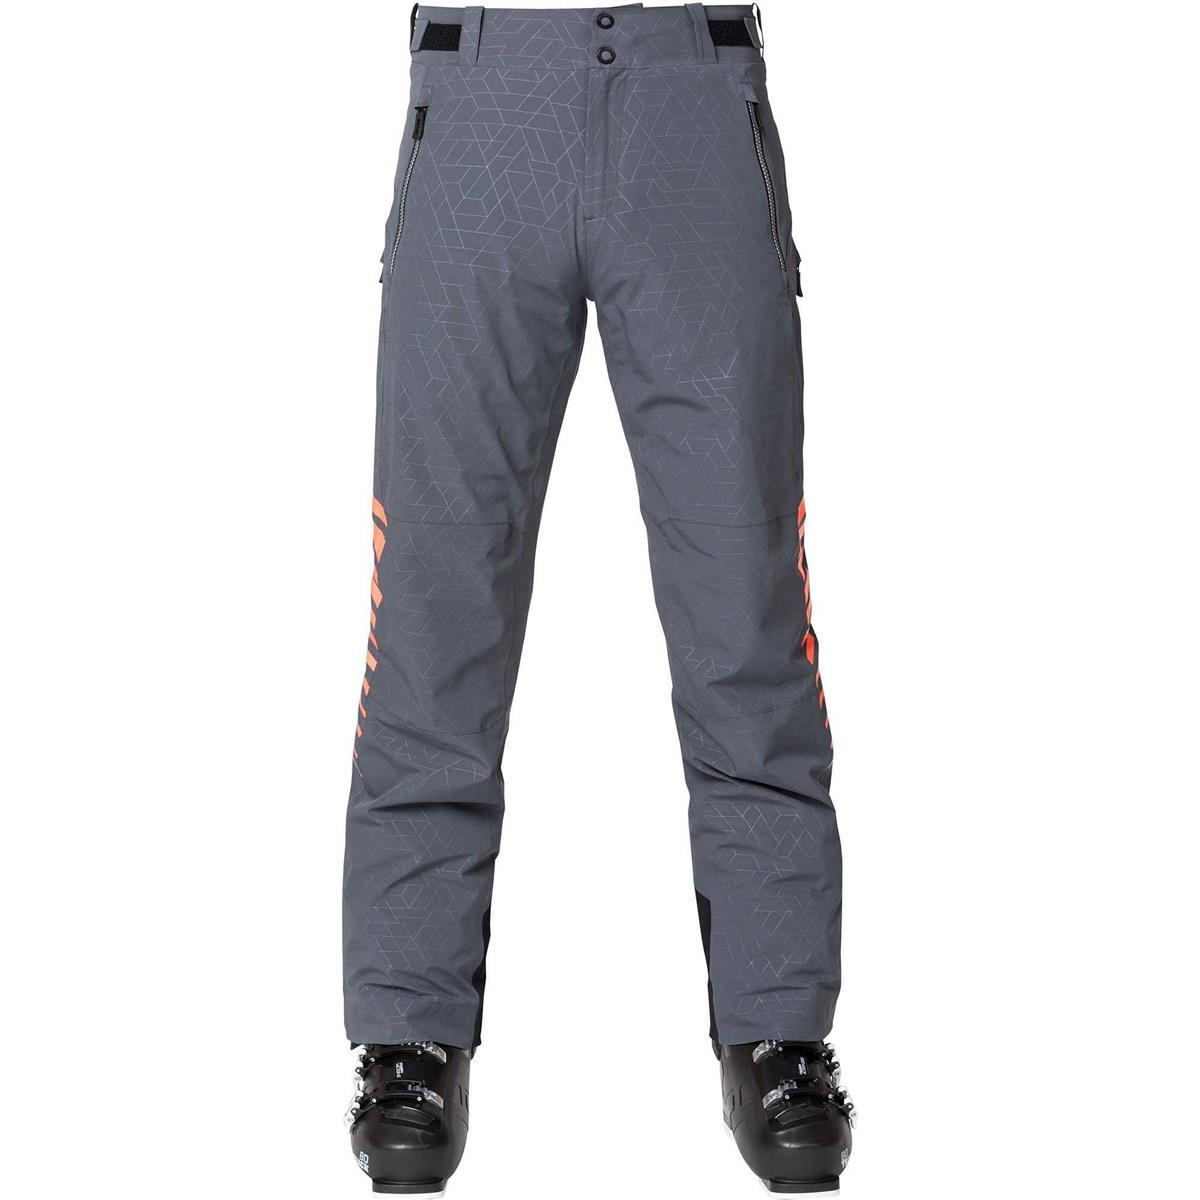 804e59410bf4 Nohavice na lyže Rossignol Atelier Course Grey Pant